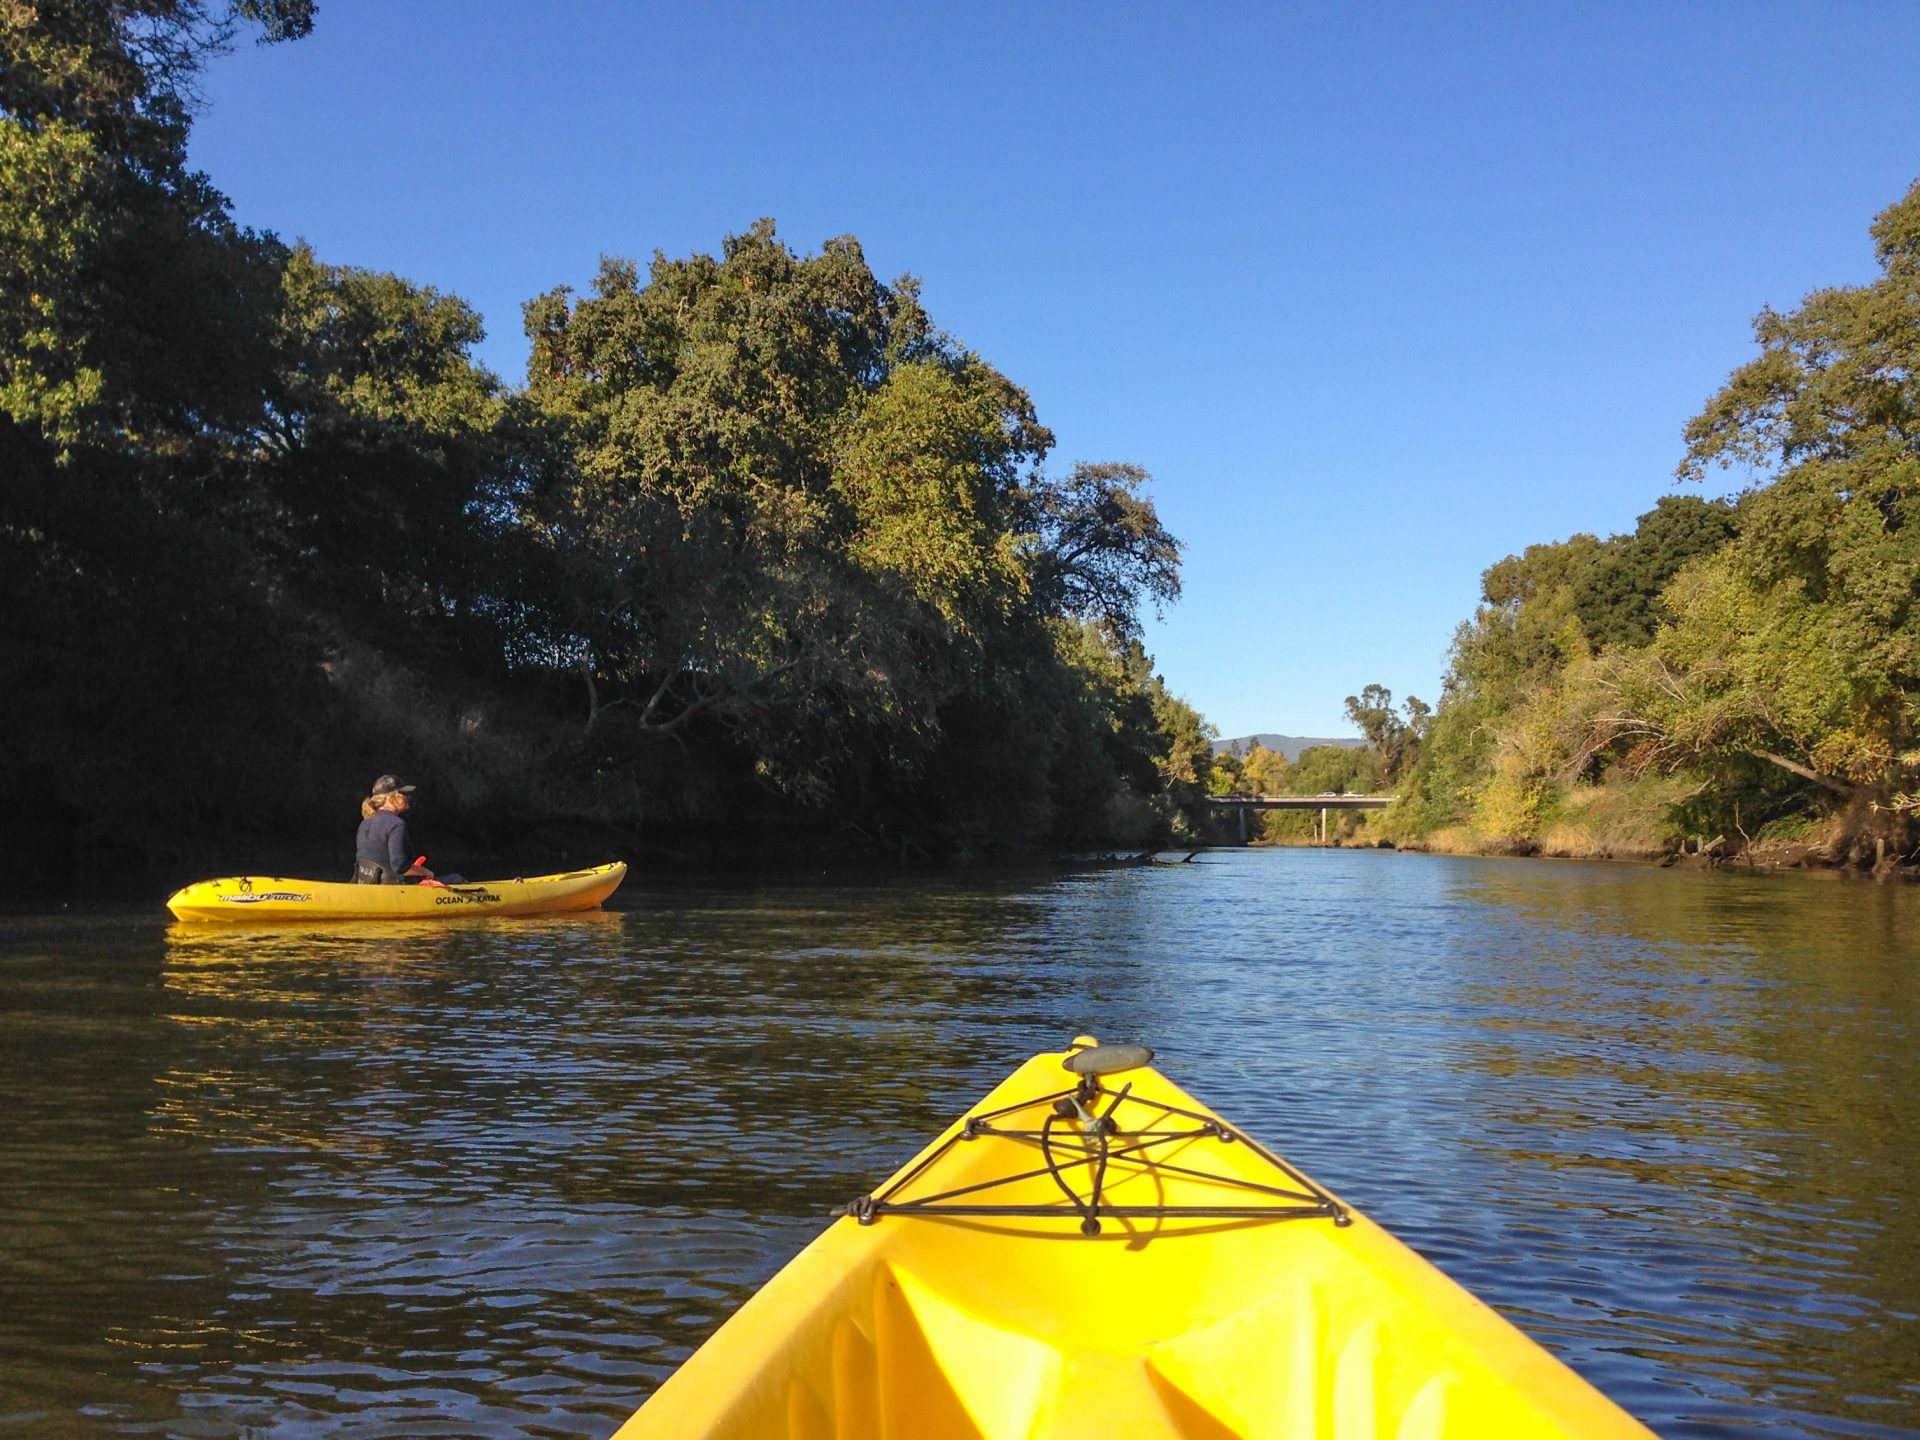 Kayak-level view of river channel with trees hanging over both sides, and one other kayaker in distance